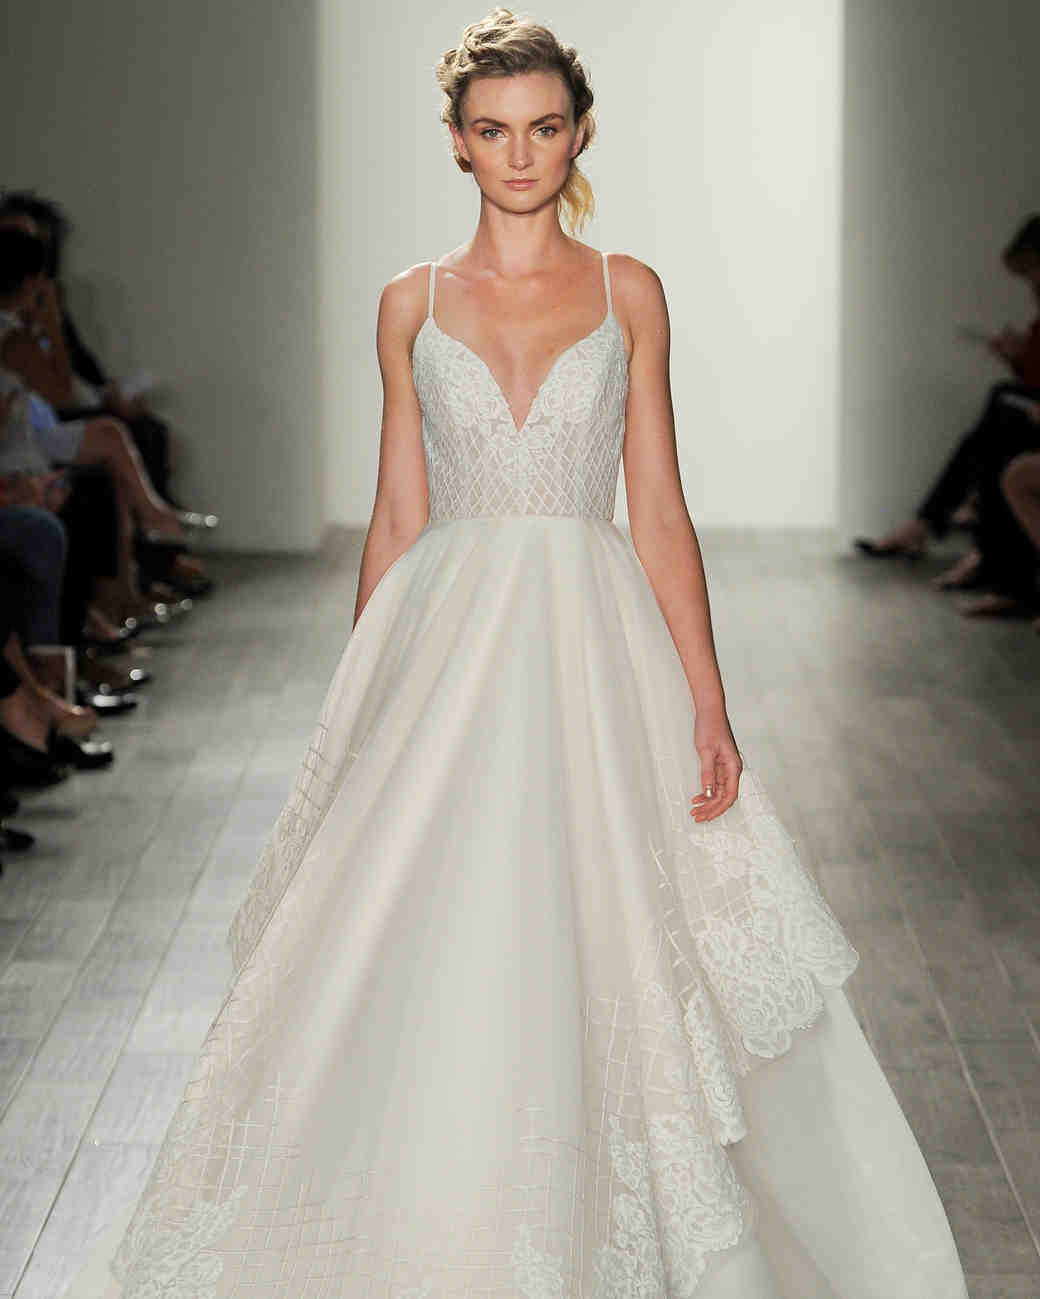 Hayley paige fall 2017 wedding dress collection martha for Top designer wedding dresses 2017